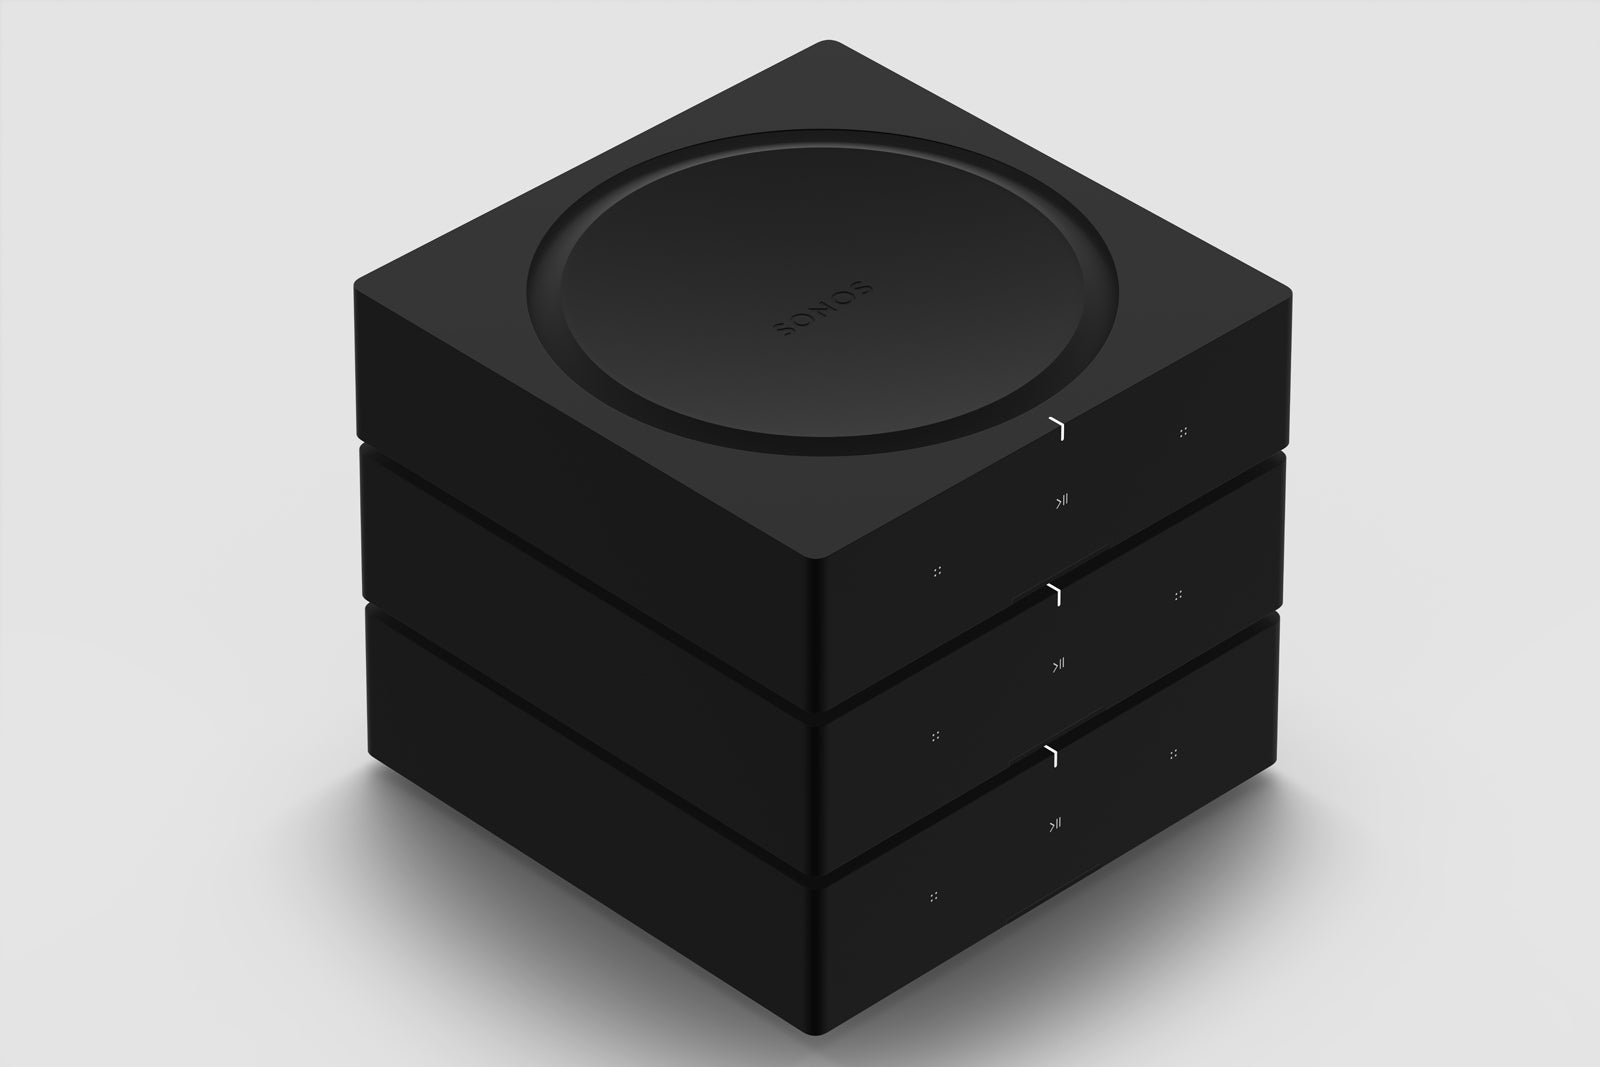 Sonos Amp Is The Most Important New Product The Company